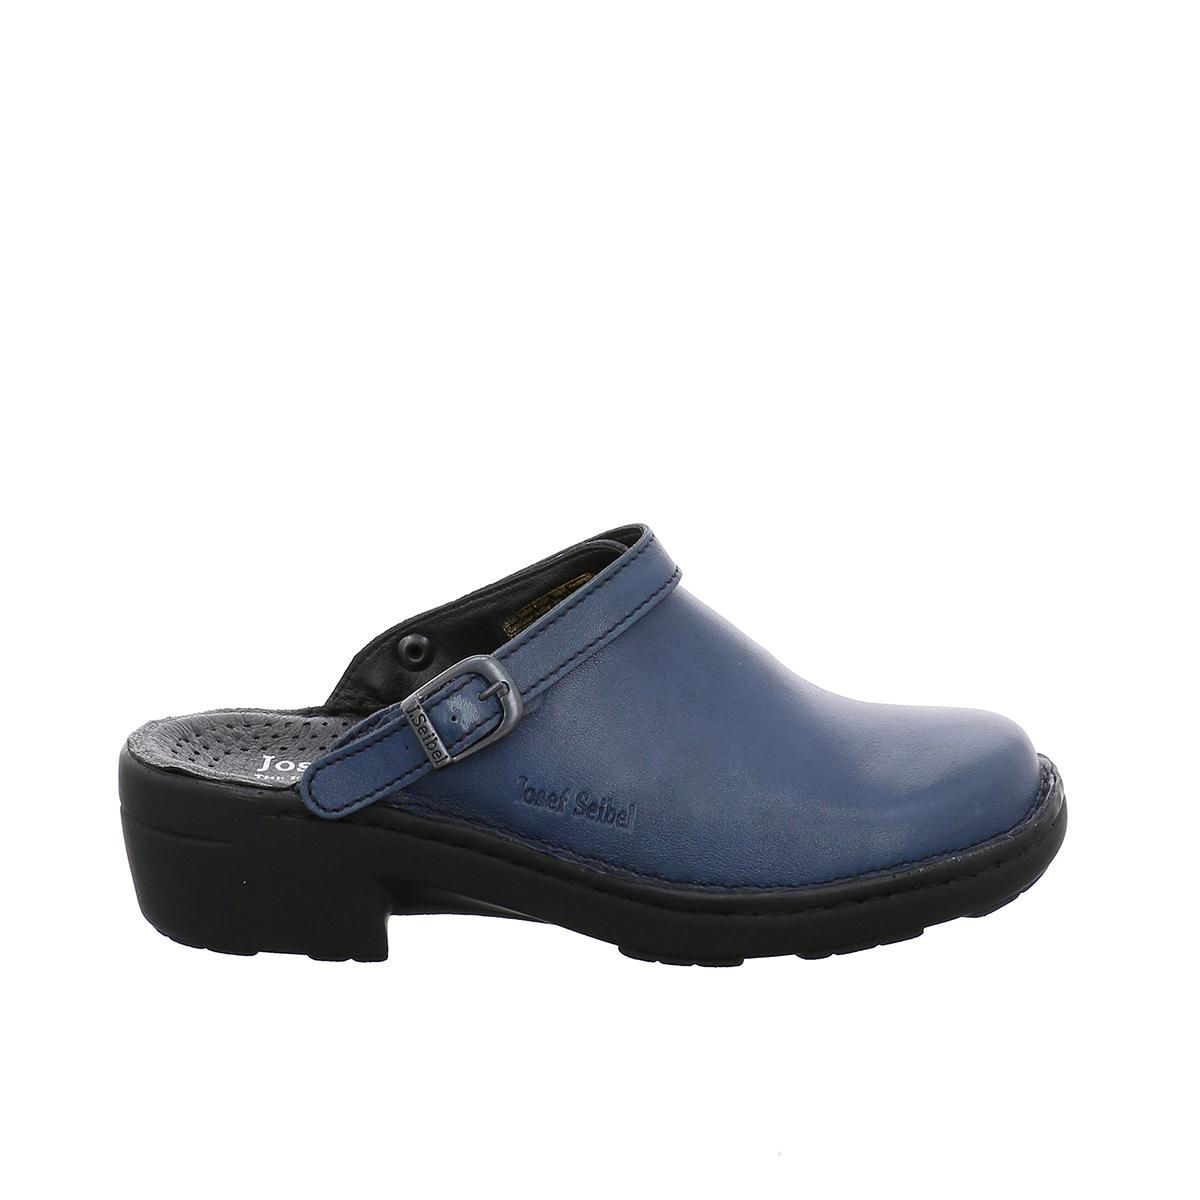 Josef Seibel Betsy Blue Abisso Slip on Mule